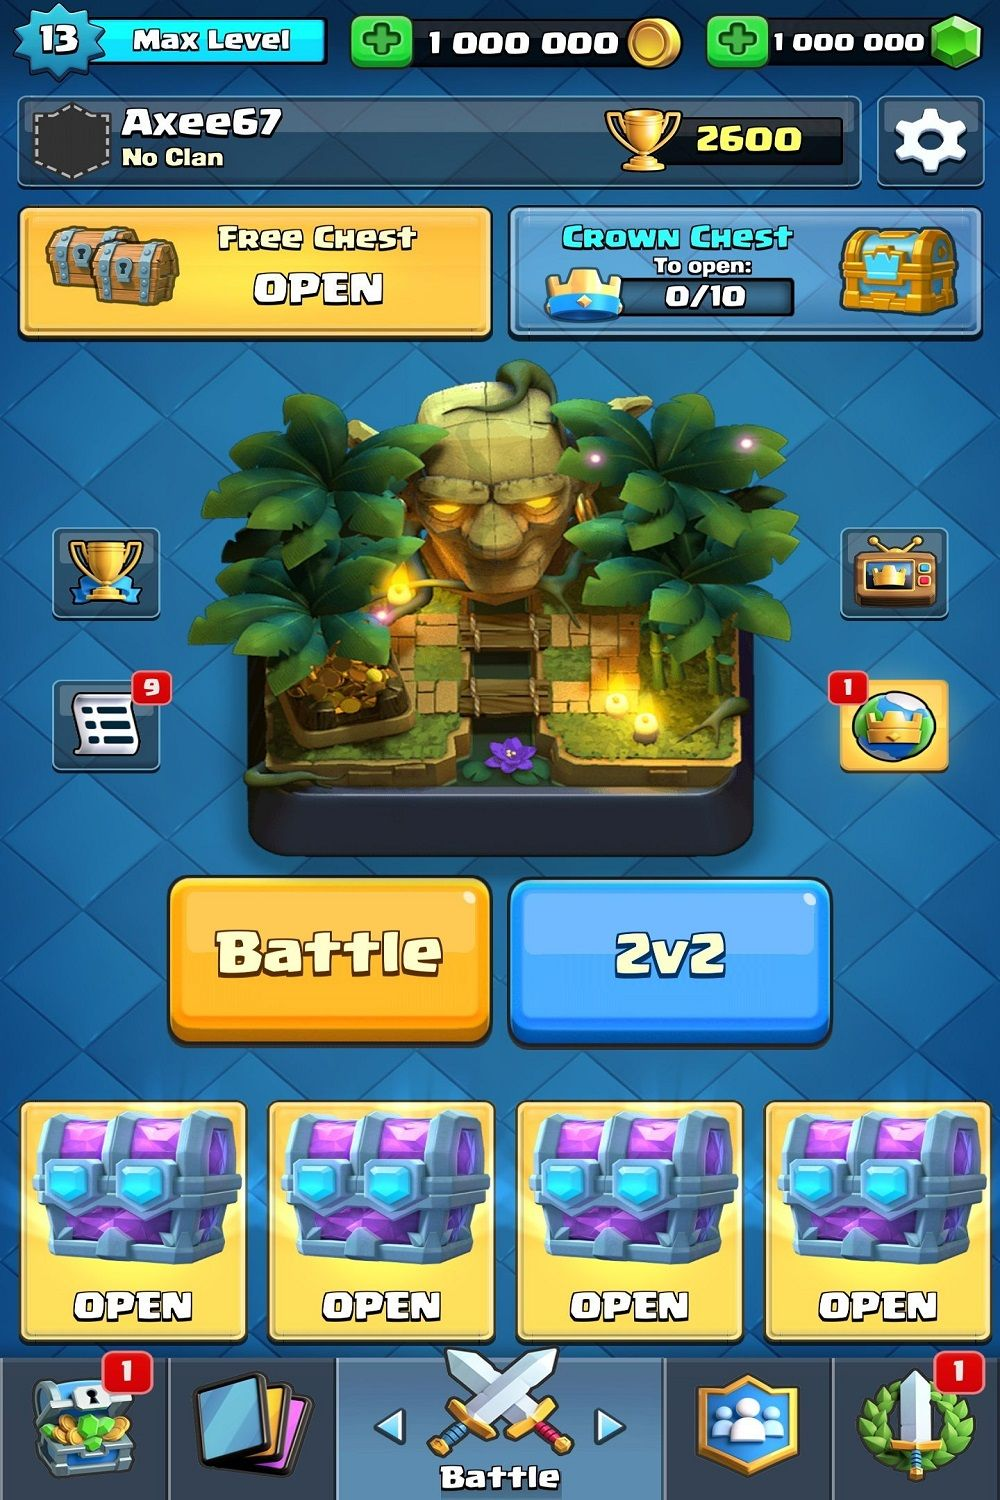 Claim Clash Royale Unlimited Gems For Free! 100% Working [18 Oct 2020]